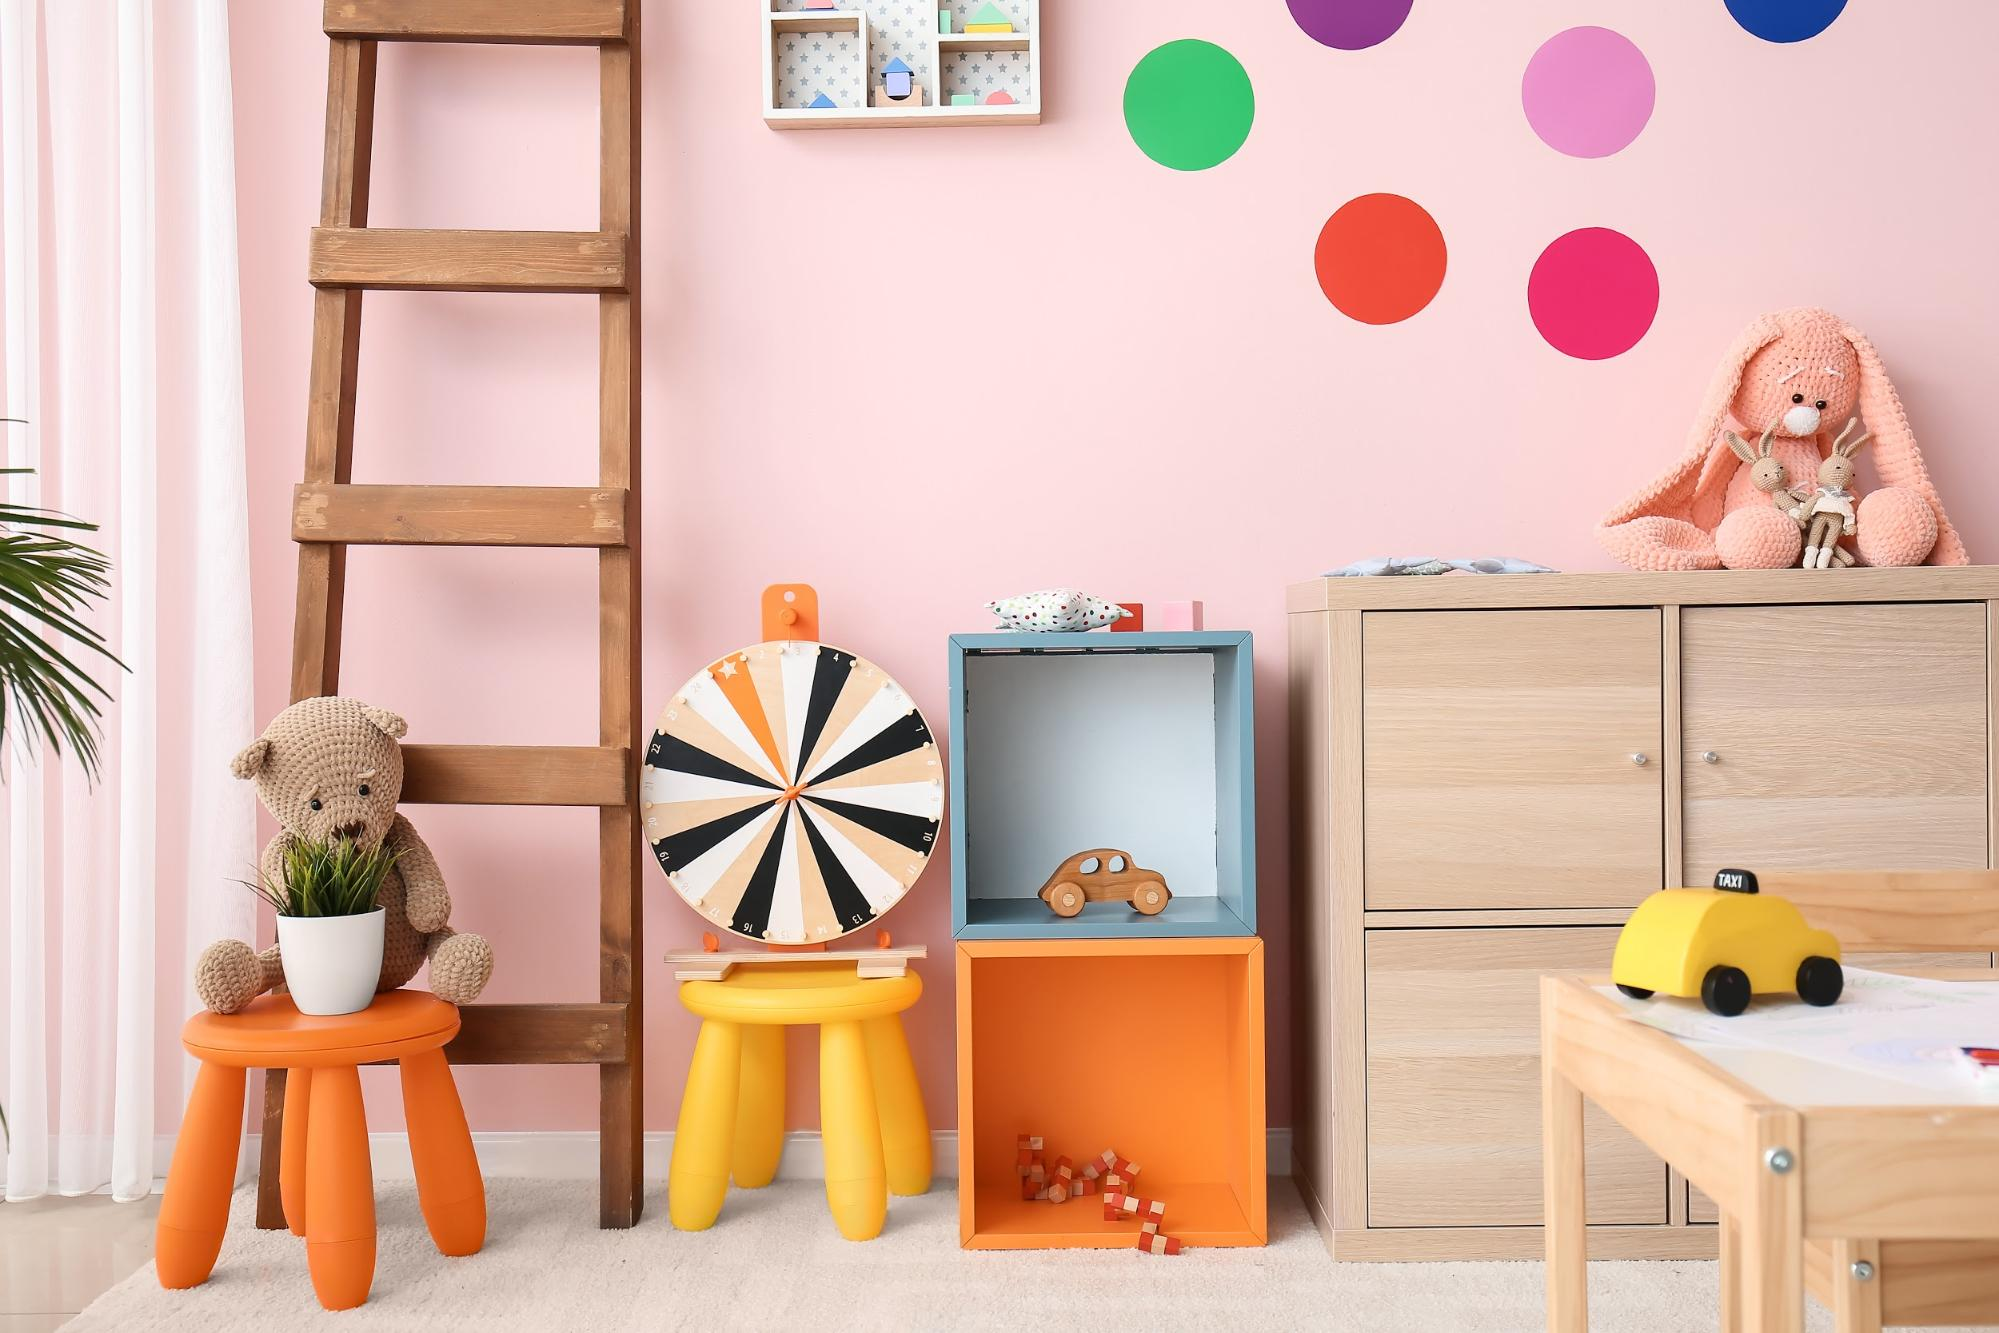 Play All Day: 51 Fun and Funky Playroom Ideas for Your Kiddo